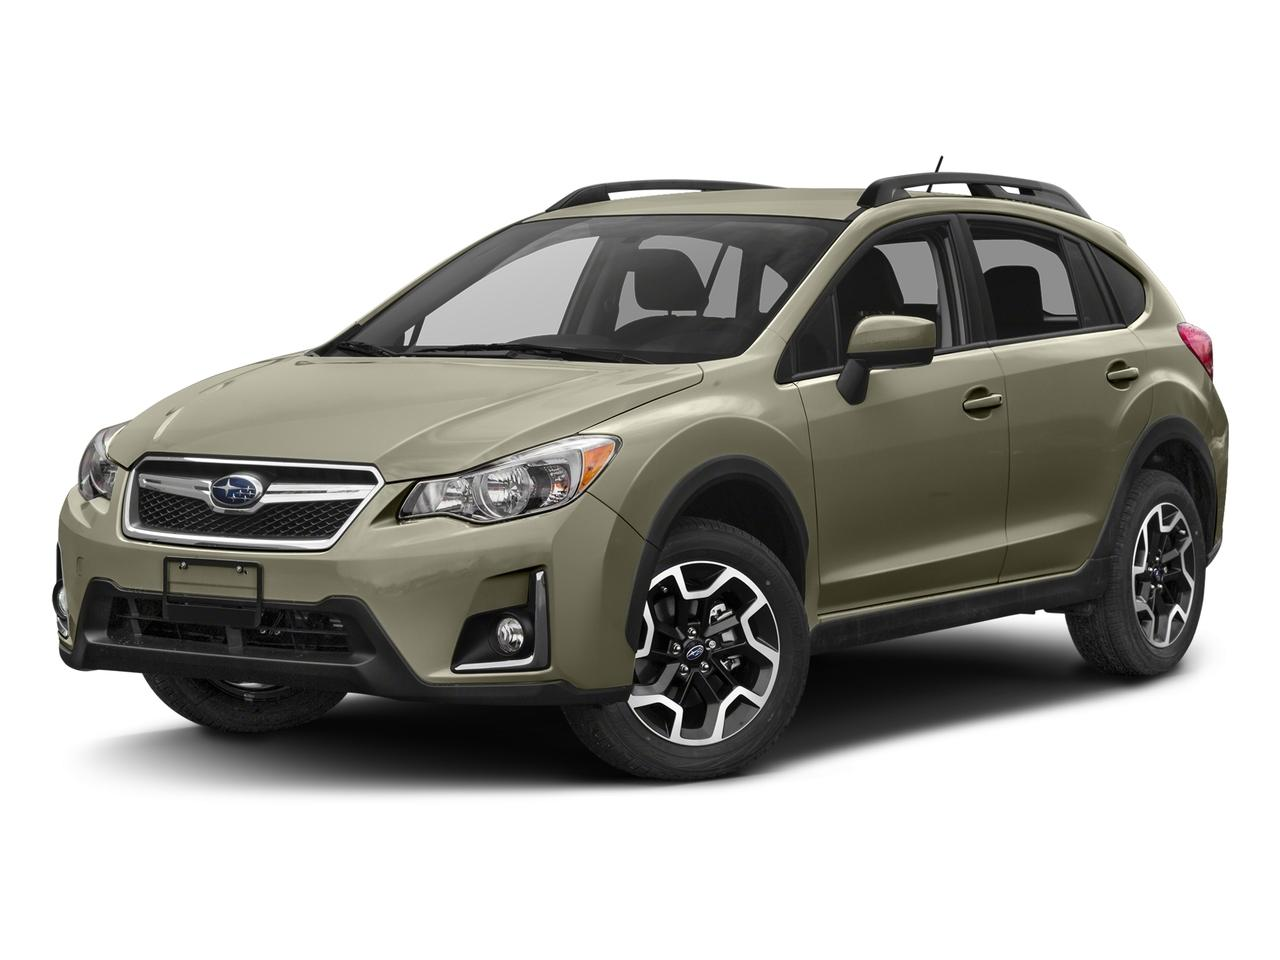 2016 Subaru Crosstrek Vehicle Photo in Leominster, MA 01453